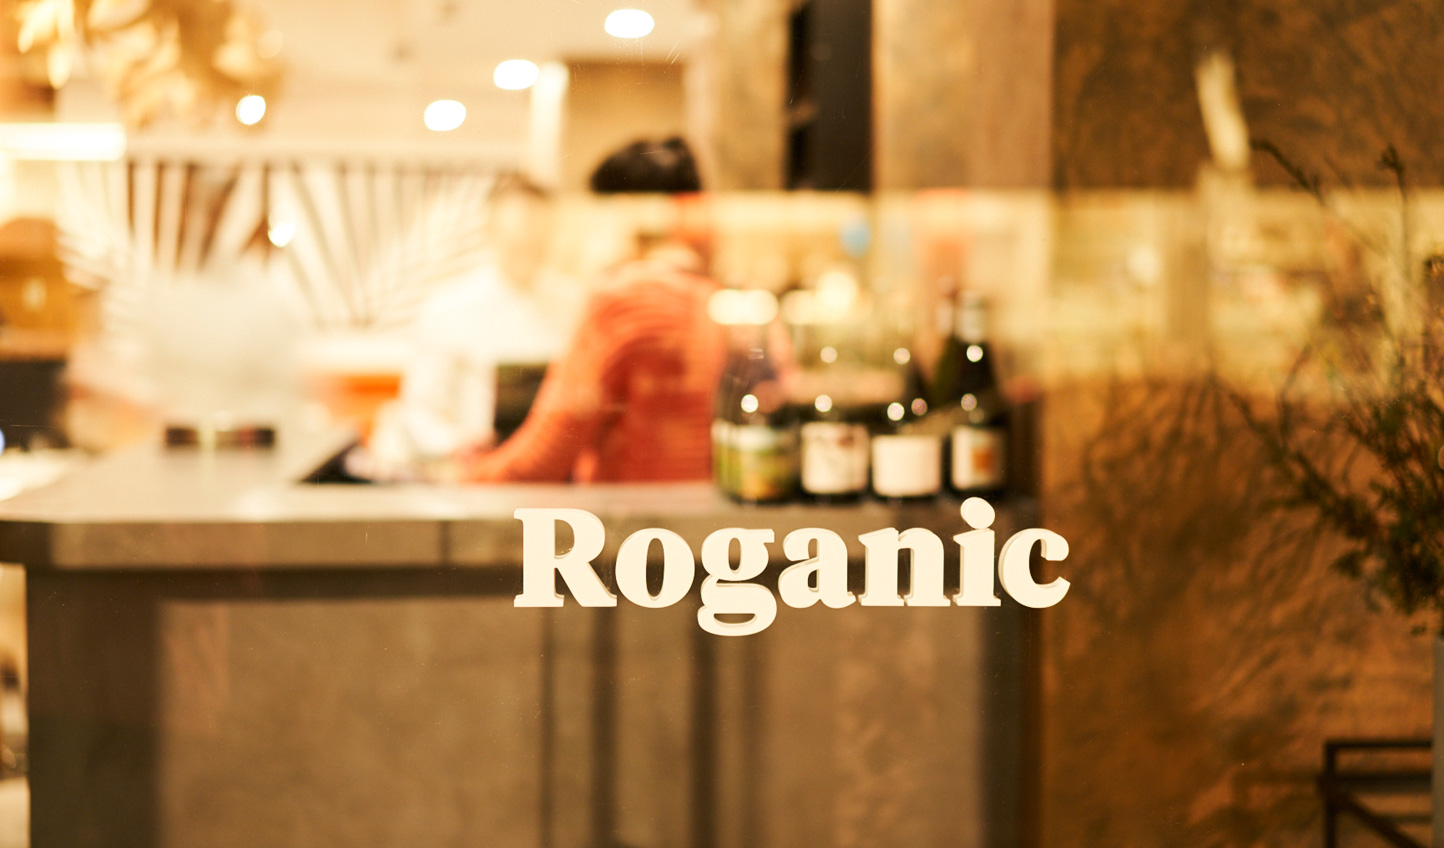 Michelin-starred fare awaits at Roganic